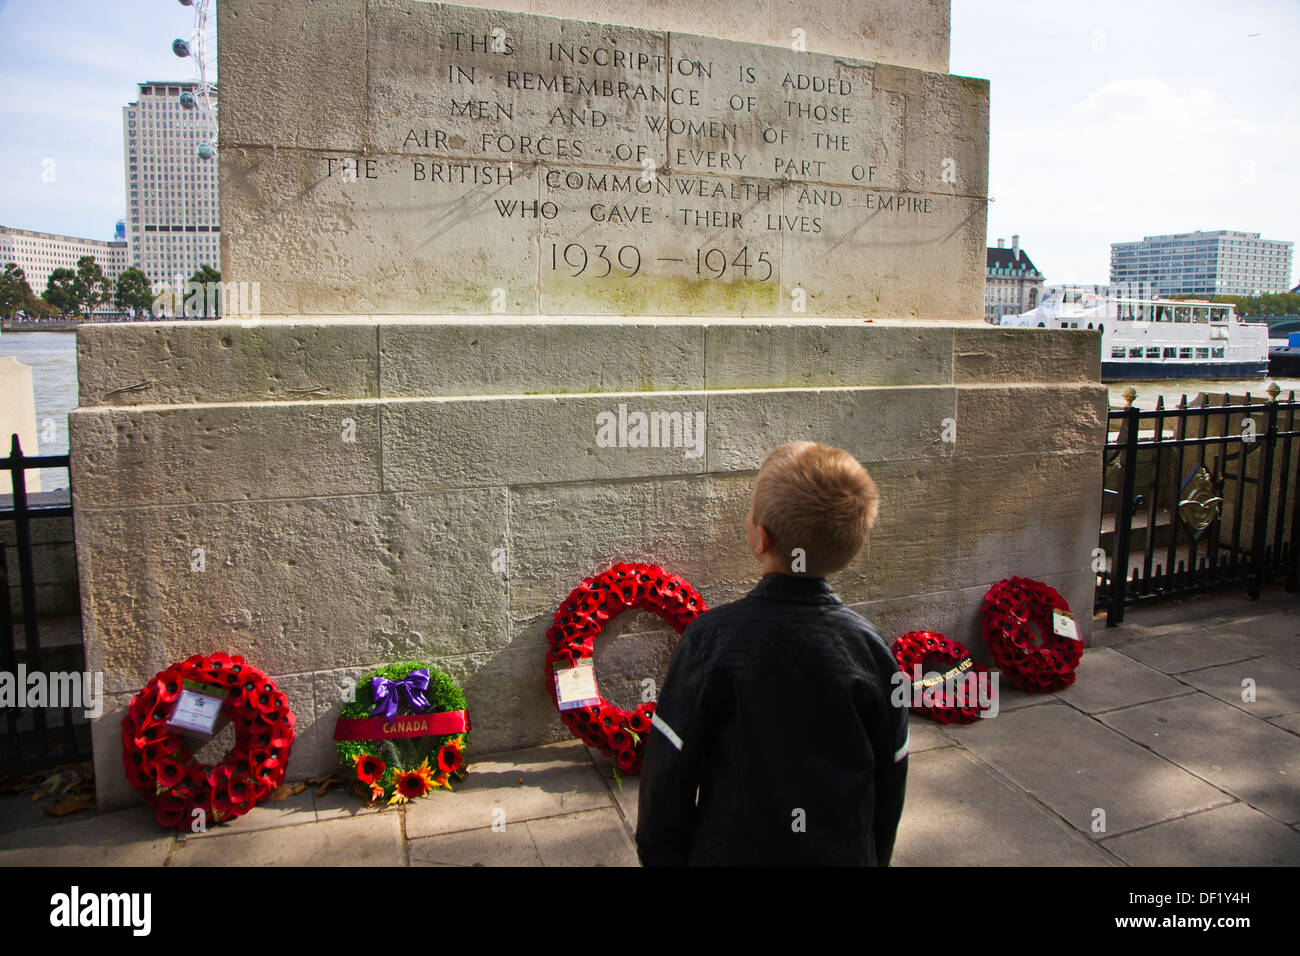 Inscription added in remembrance of those men and women of the Air Forces of every part of the British Commonwealth - Stock Image